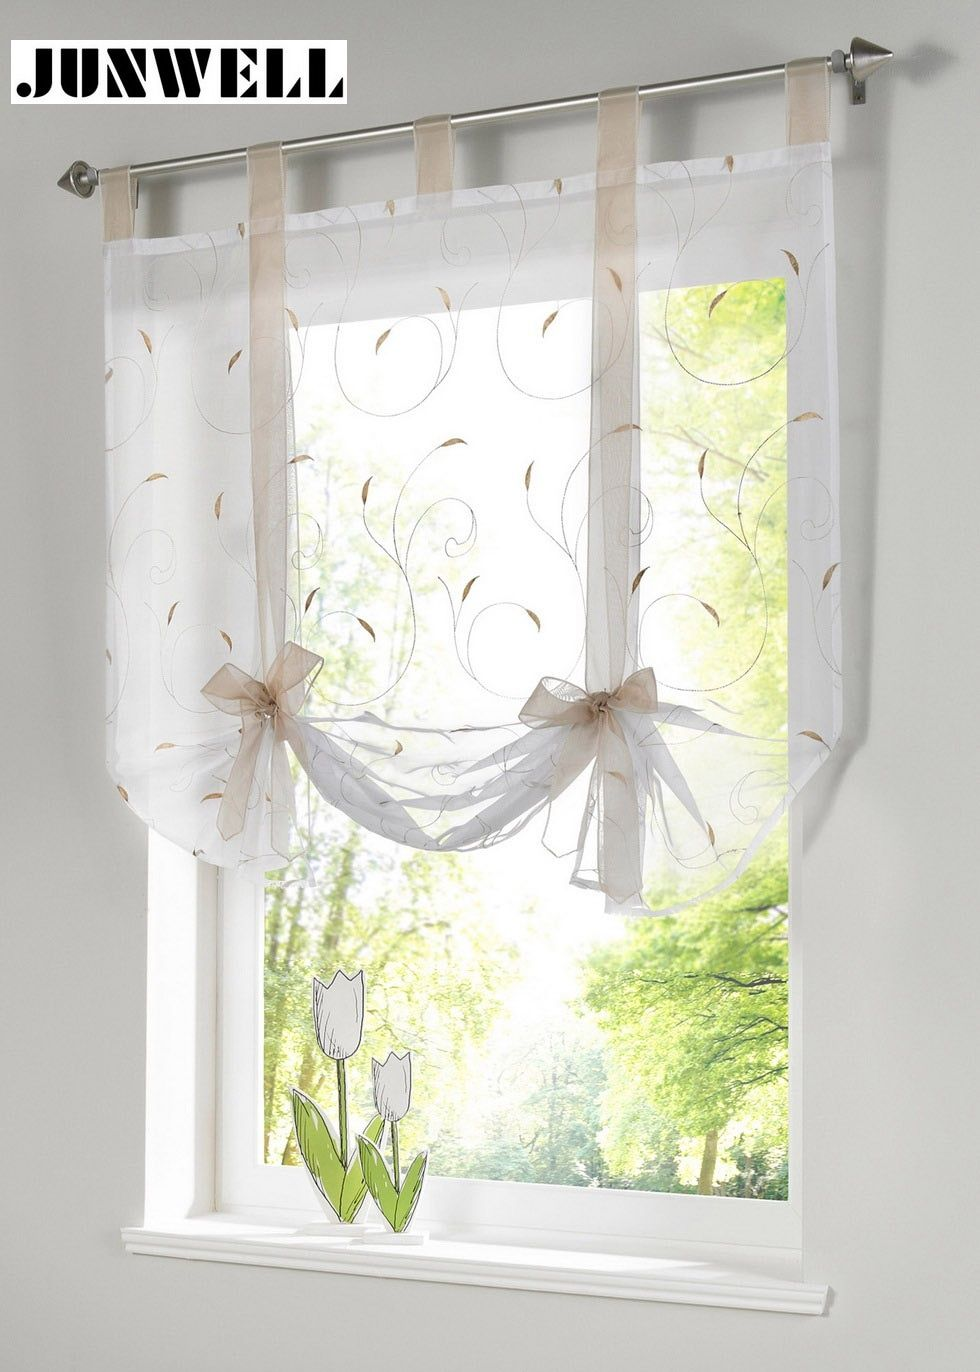 Roman shade European embroidery style tie up window curtain kitchen curtain voile sheer tab top window brand curtains cortinas